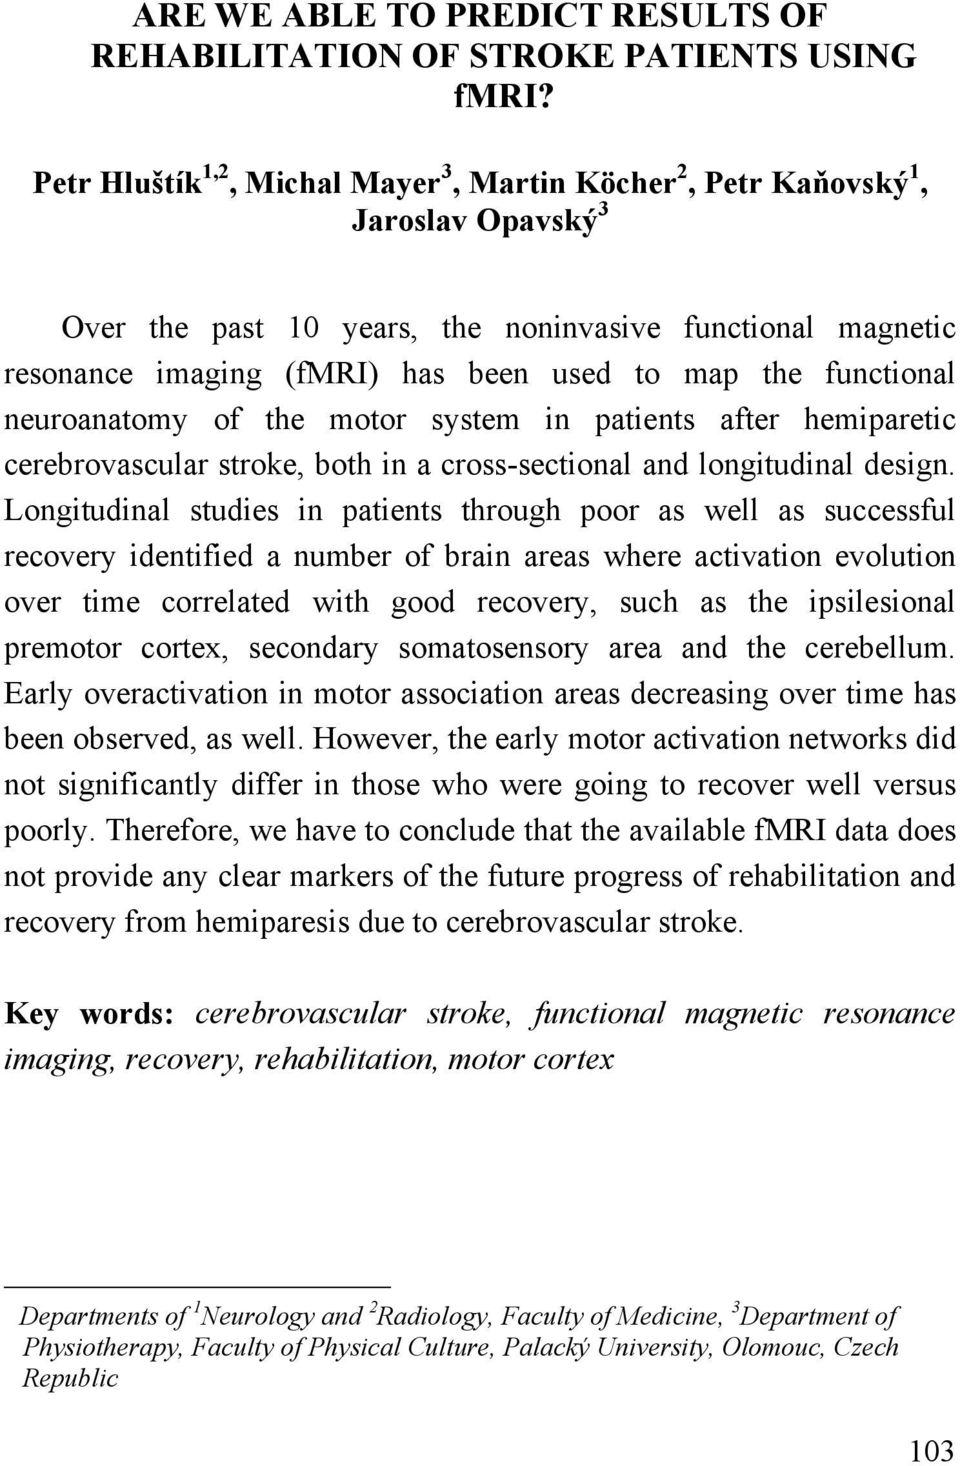 functional neuroanatomy of the motor system in patients after hemiparetic cerebrovascular stroke, both in a cross-sectional and longitudinal design.